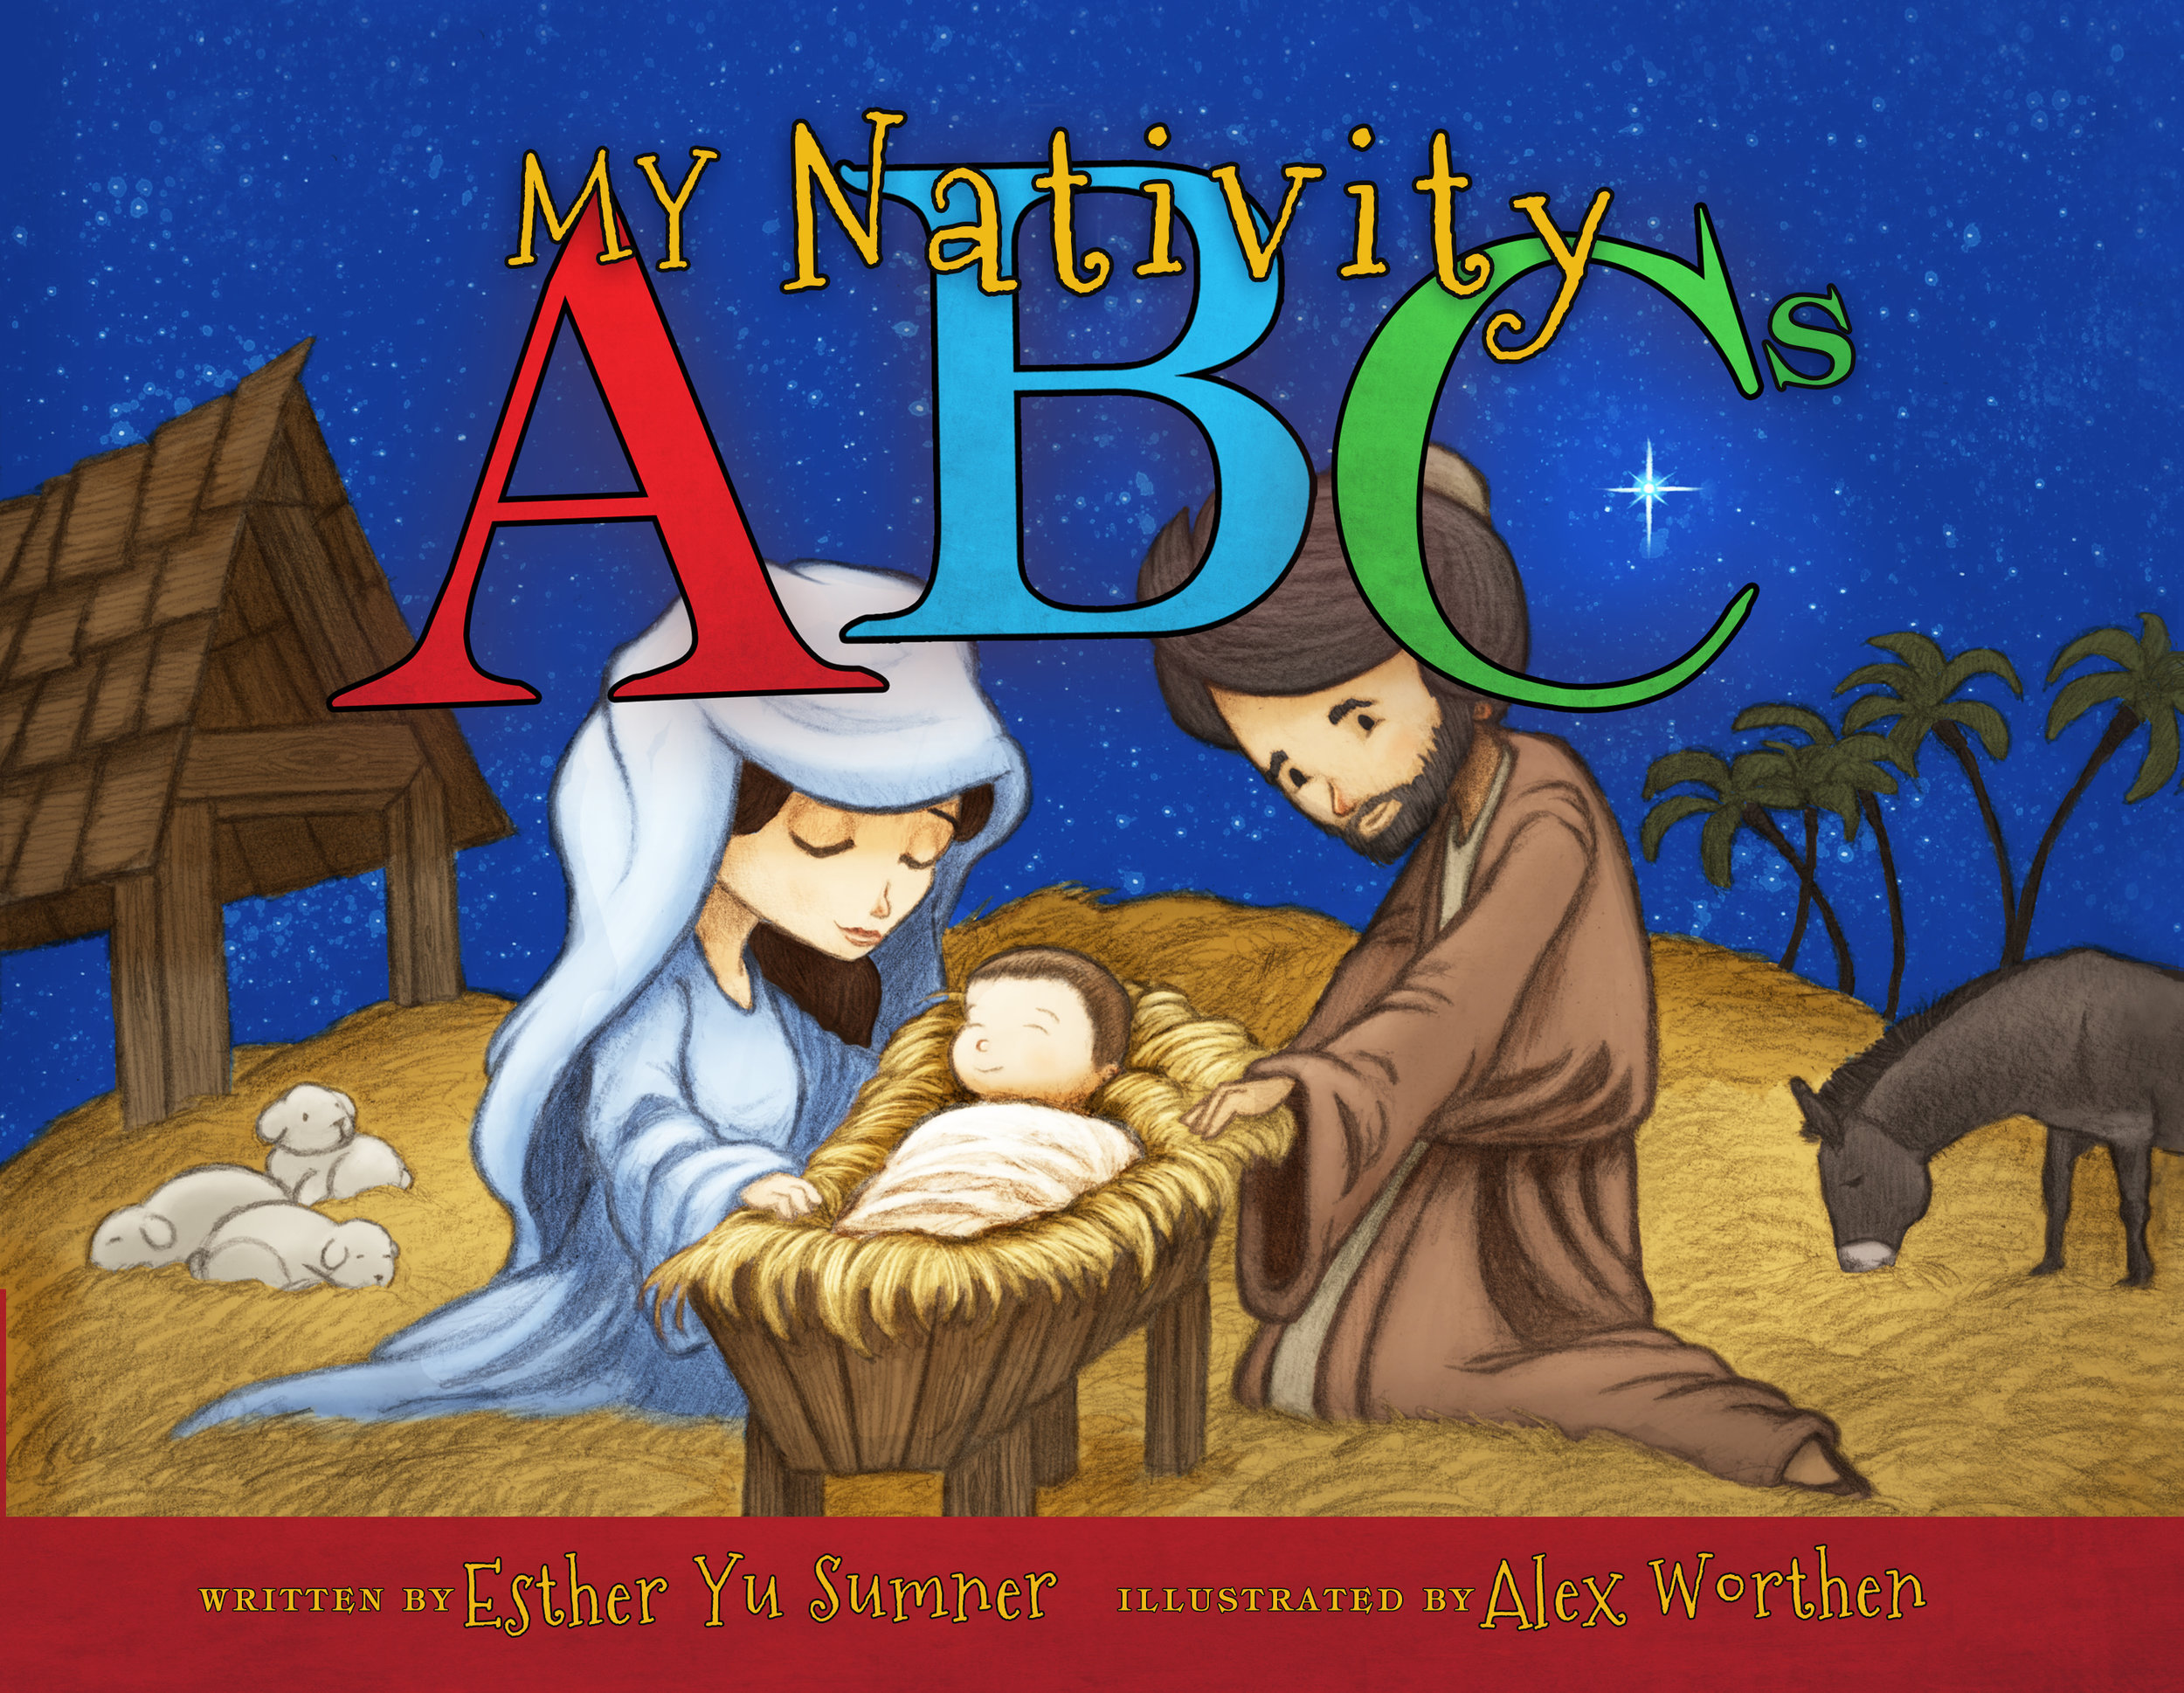 """My Nativity ABCs"" written by Esther Yu Sumner."